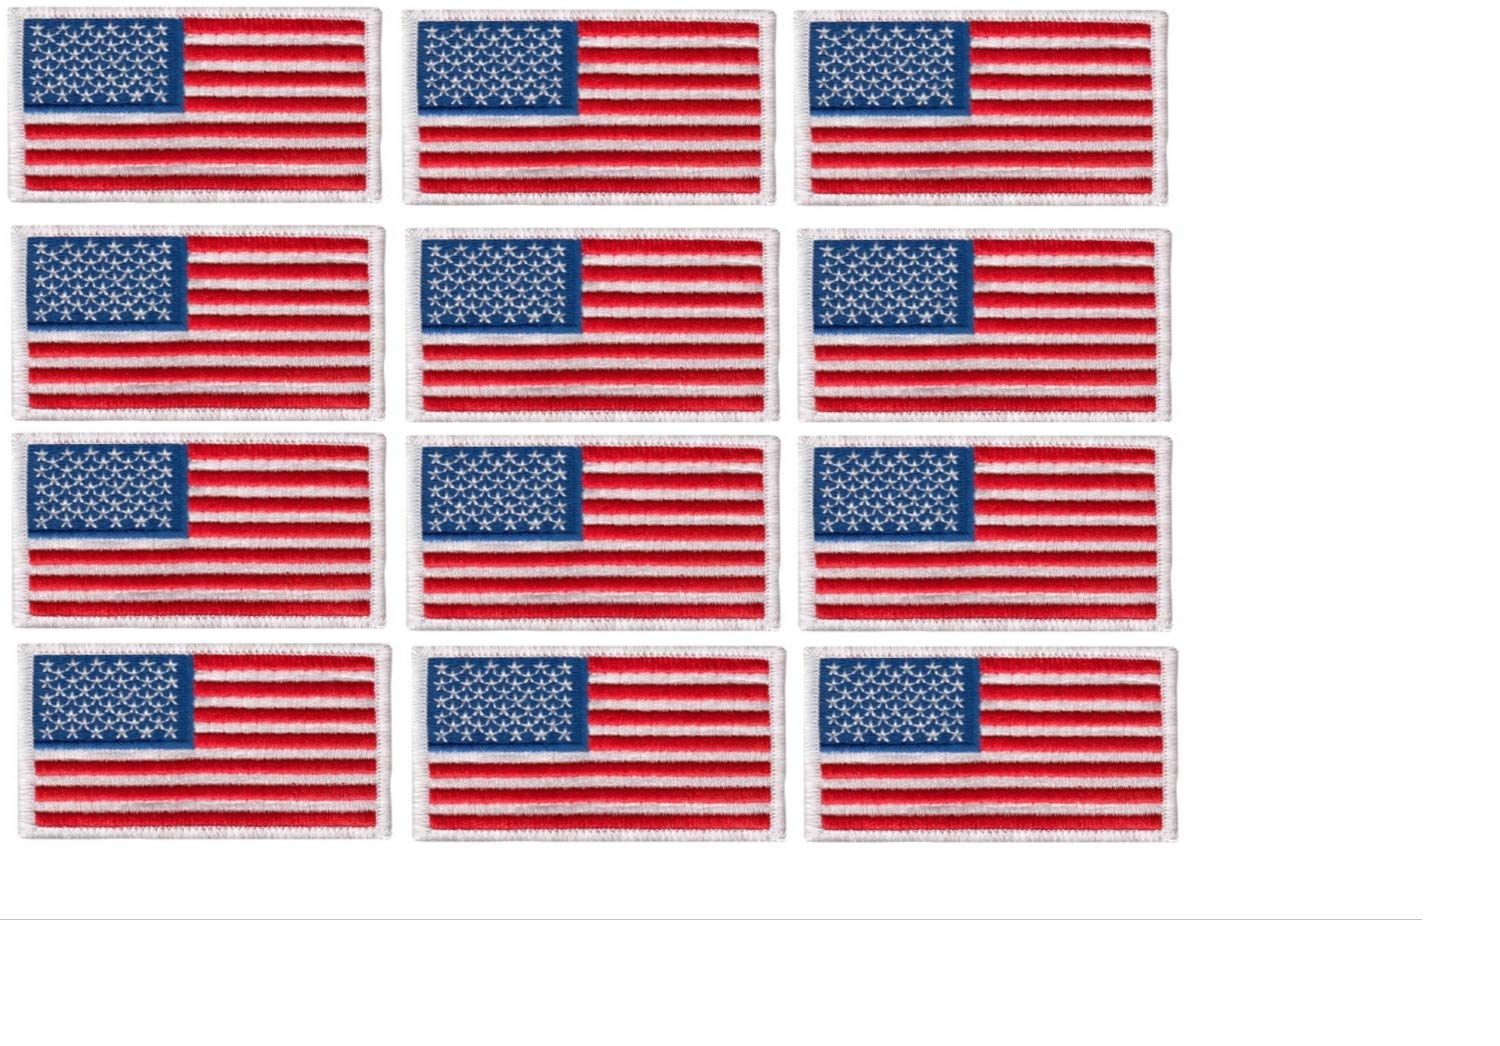 12 Pack - American Flag Embroidered Patch, white border USA United States of America, US flag Patch, sew on by Hero's Pride